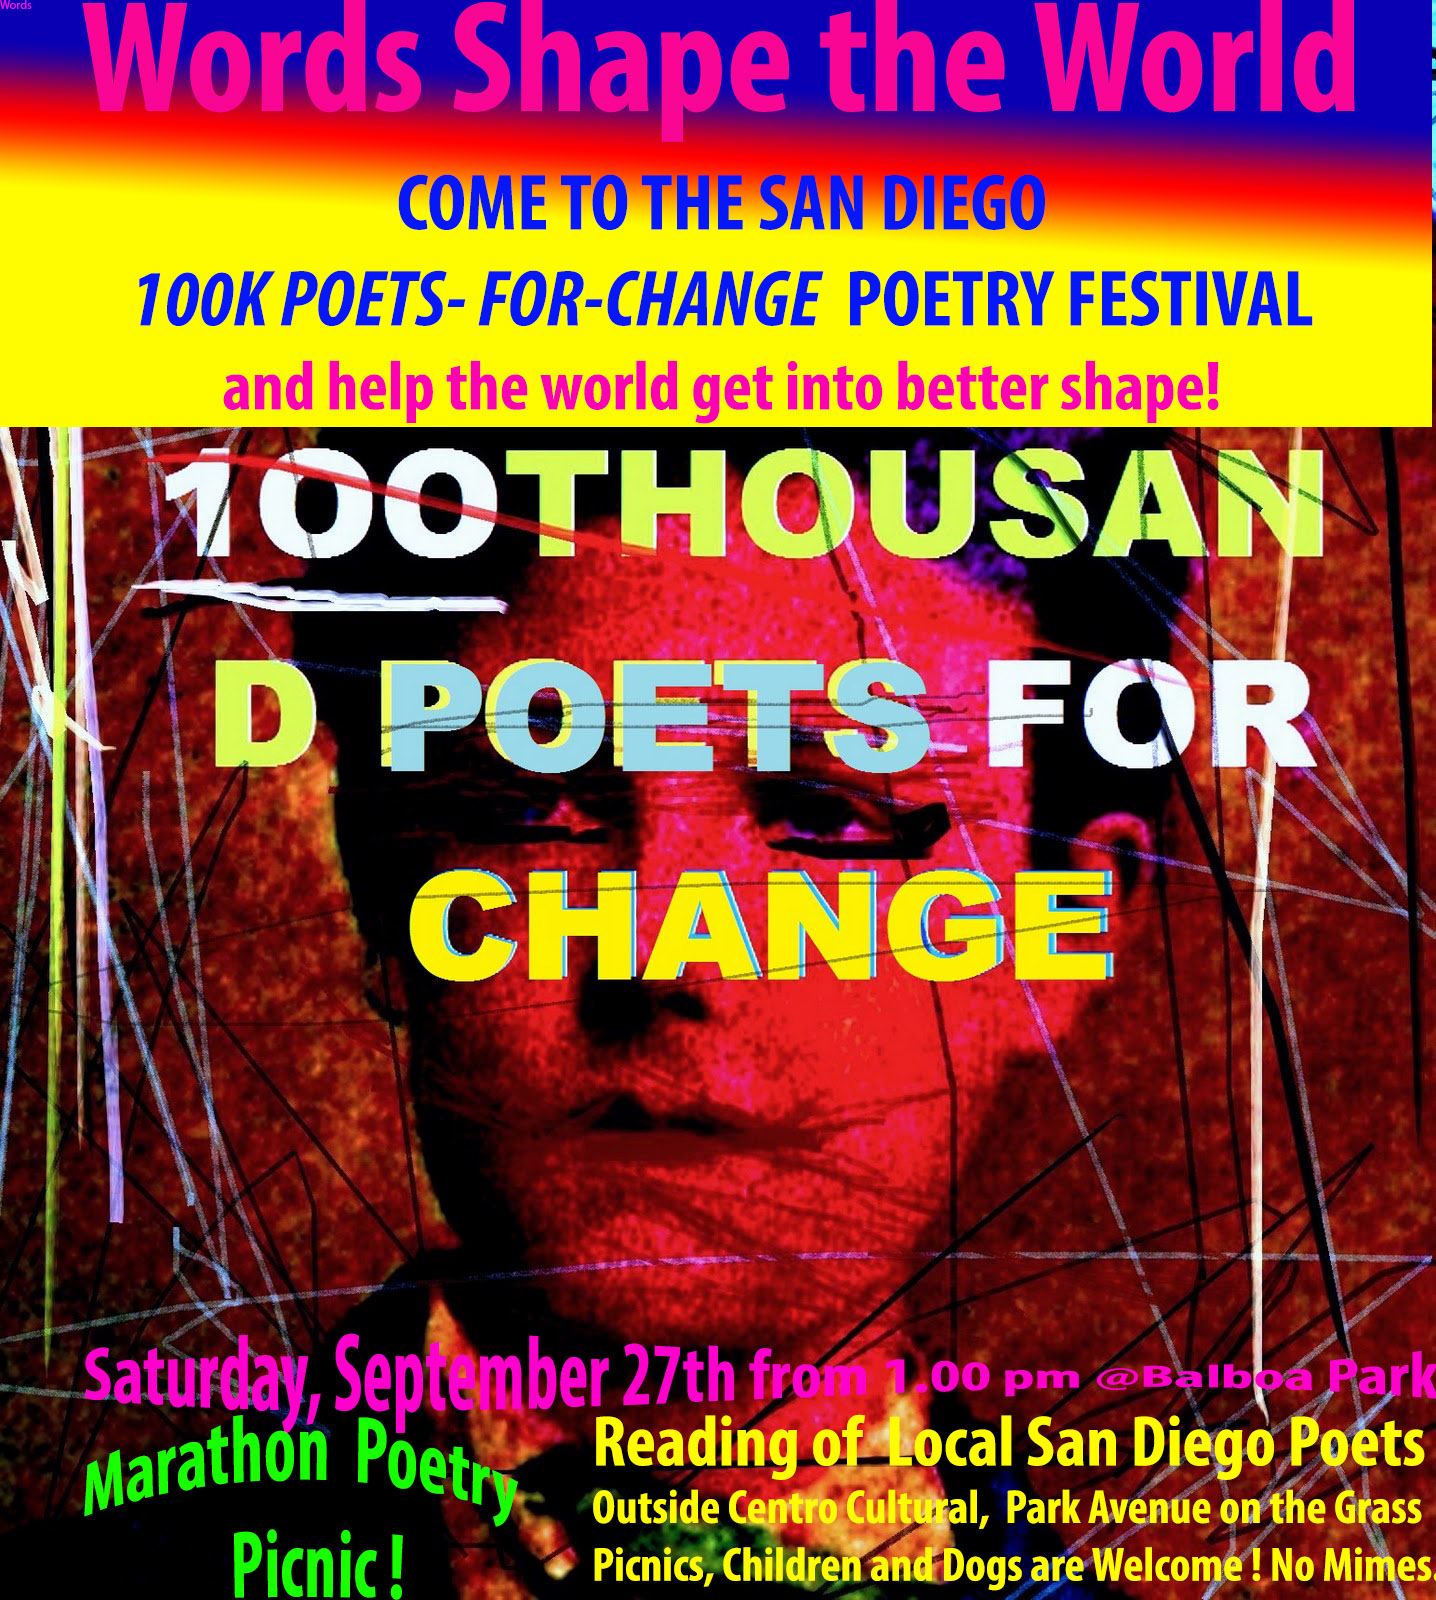 *Poster for Marathon Rimbaud-100-THOUSAND-POETS-4-CHANGE-by-Henrik-Aeshna